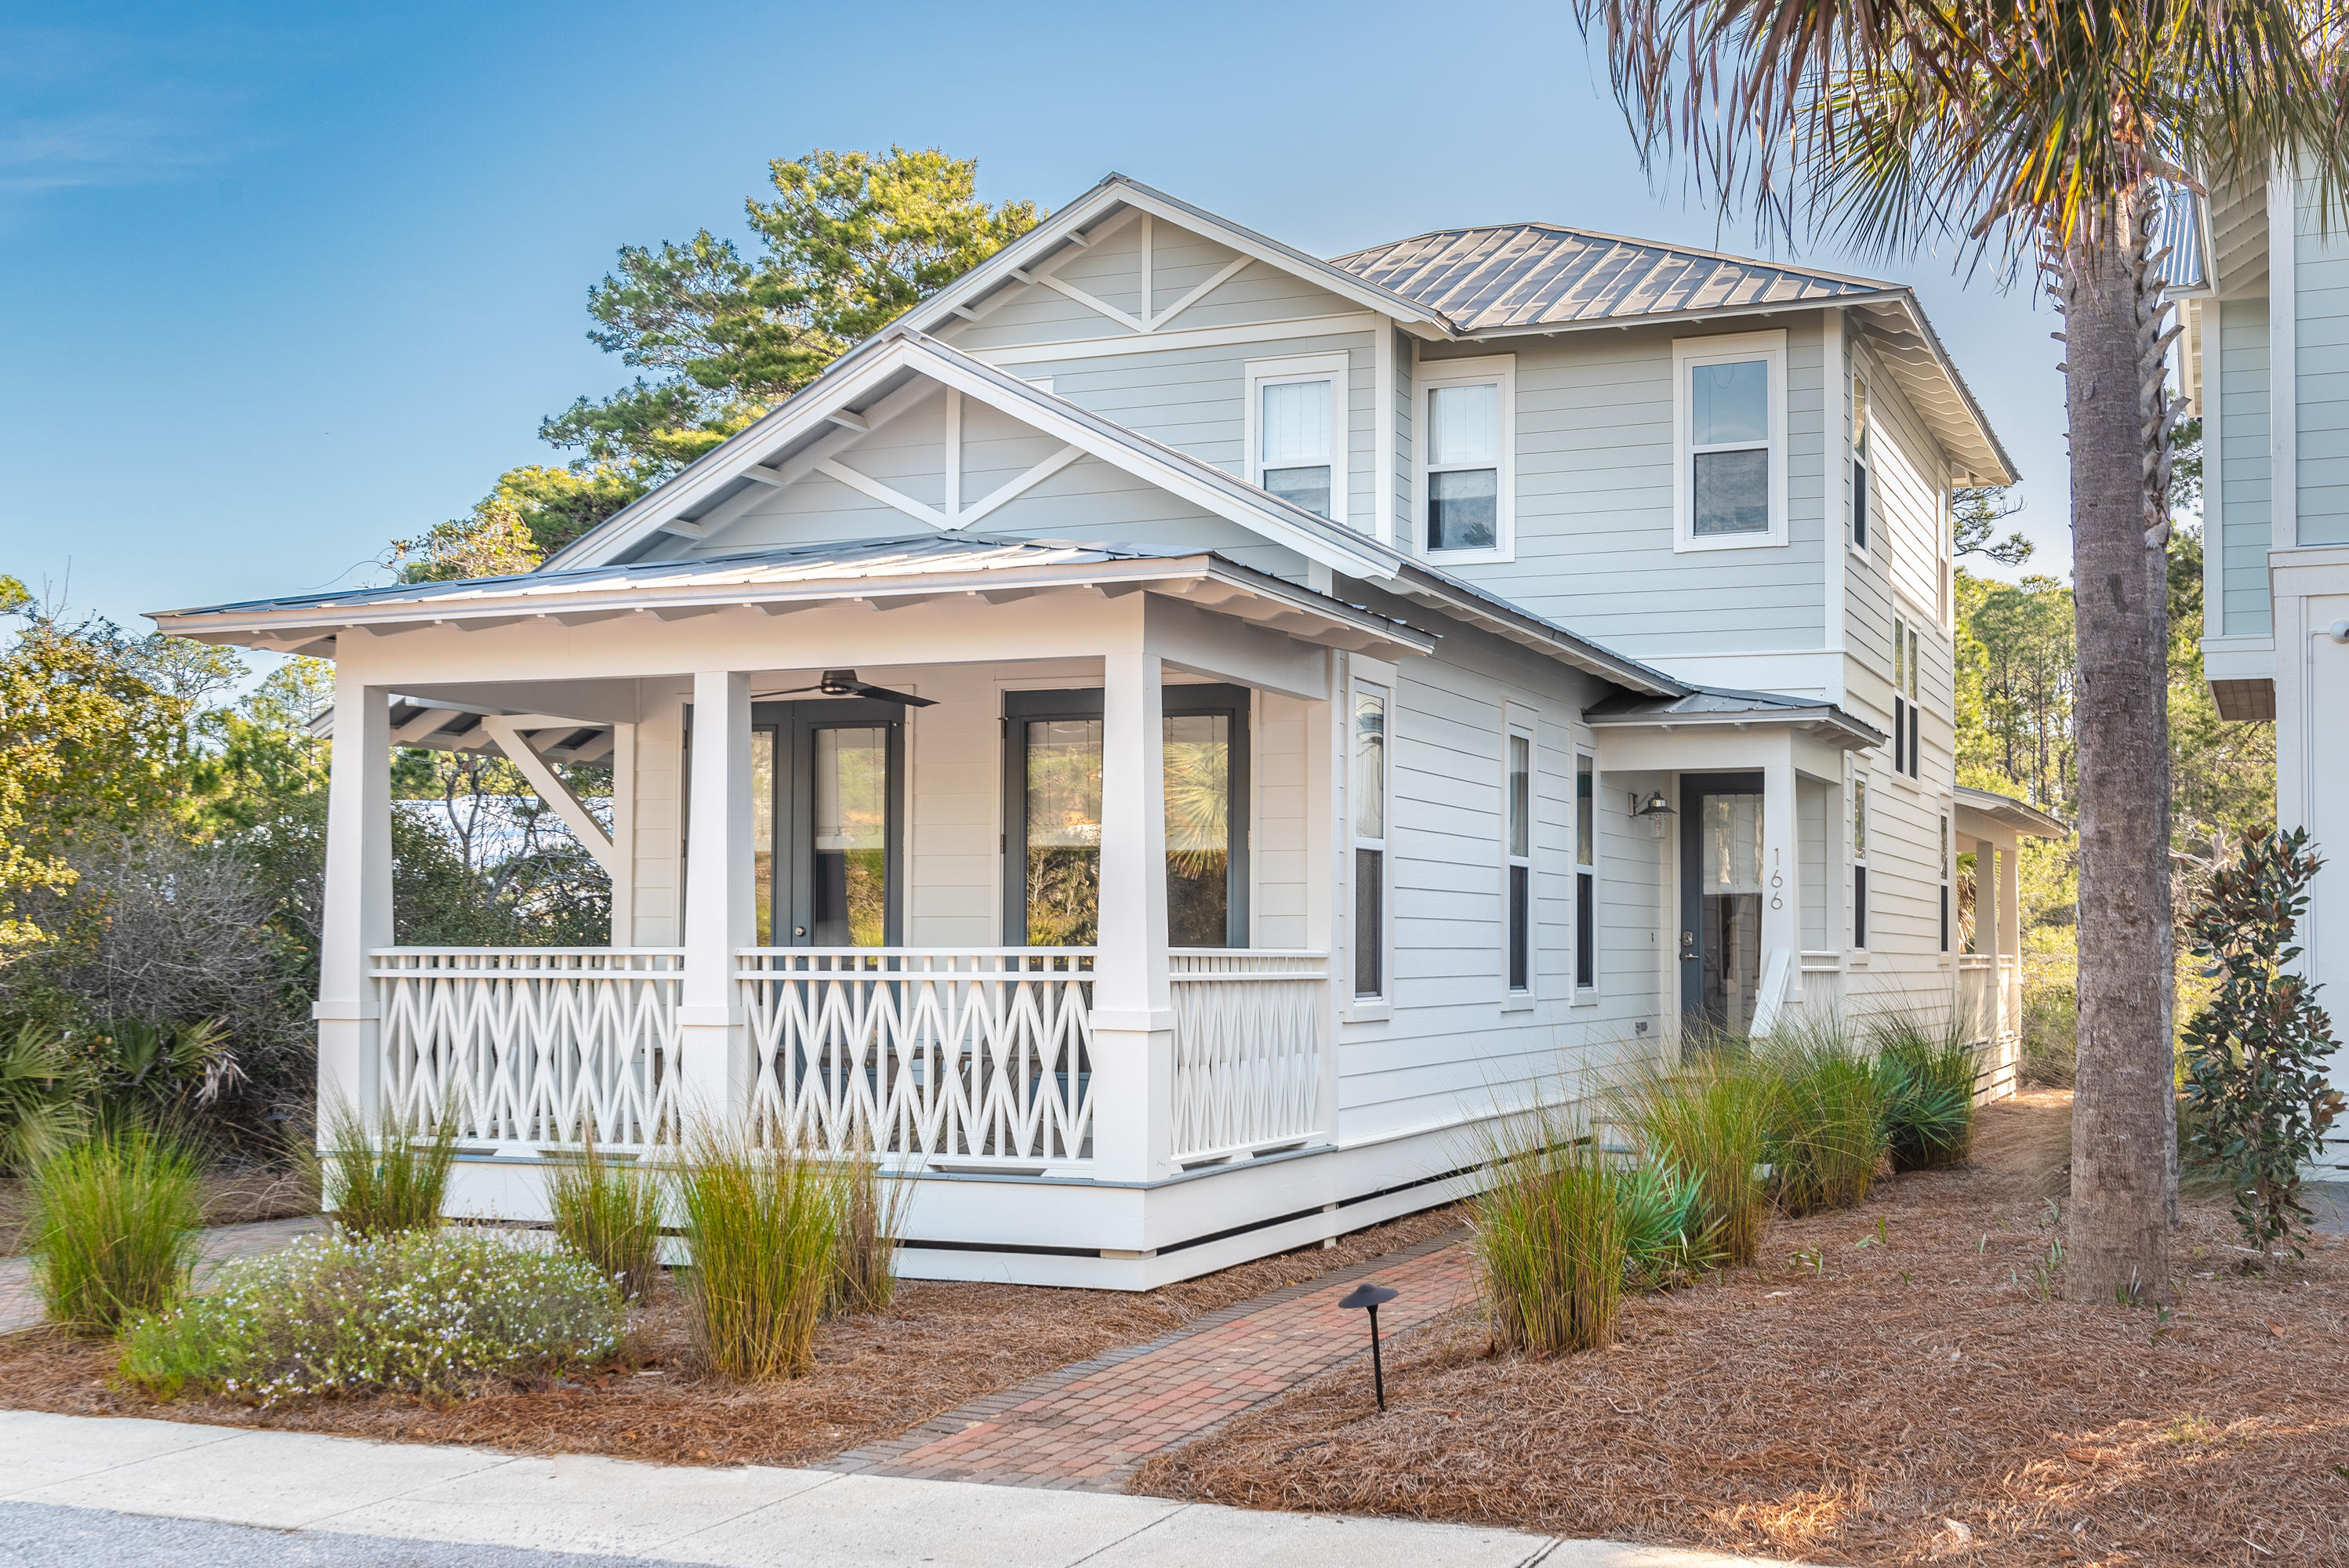 Find charm and function at this gorgeous 3BR/3.5BA beach cottage in the popular Seacrest Beach commu